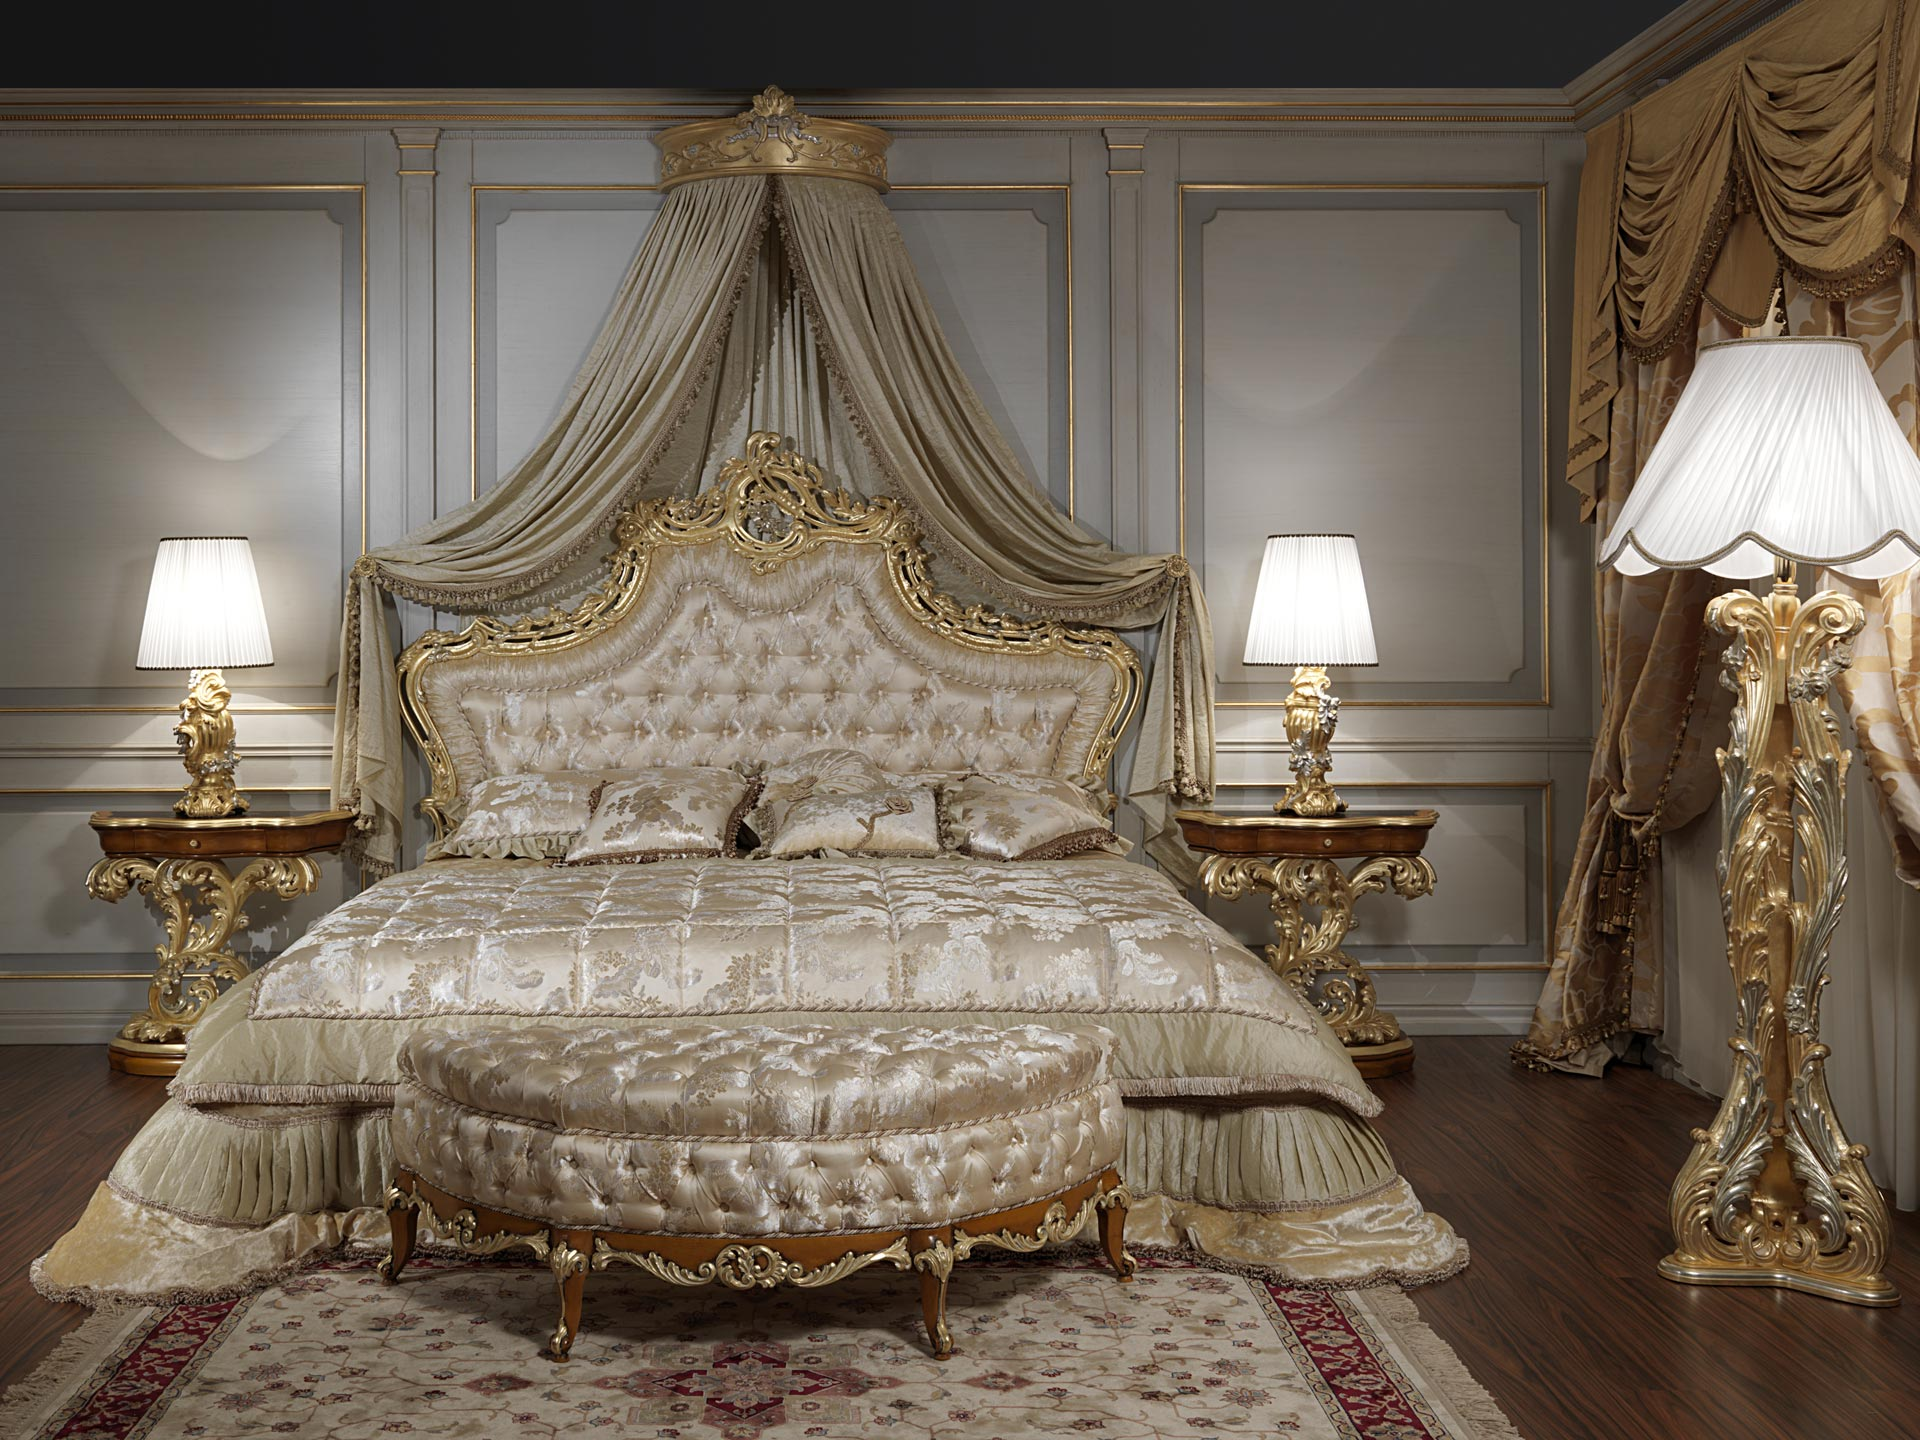 Roman baroque bed art 2012  Vimercati Meda